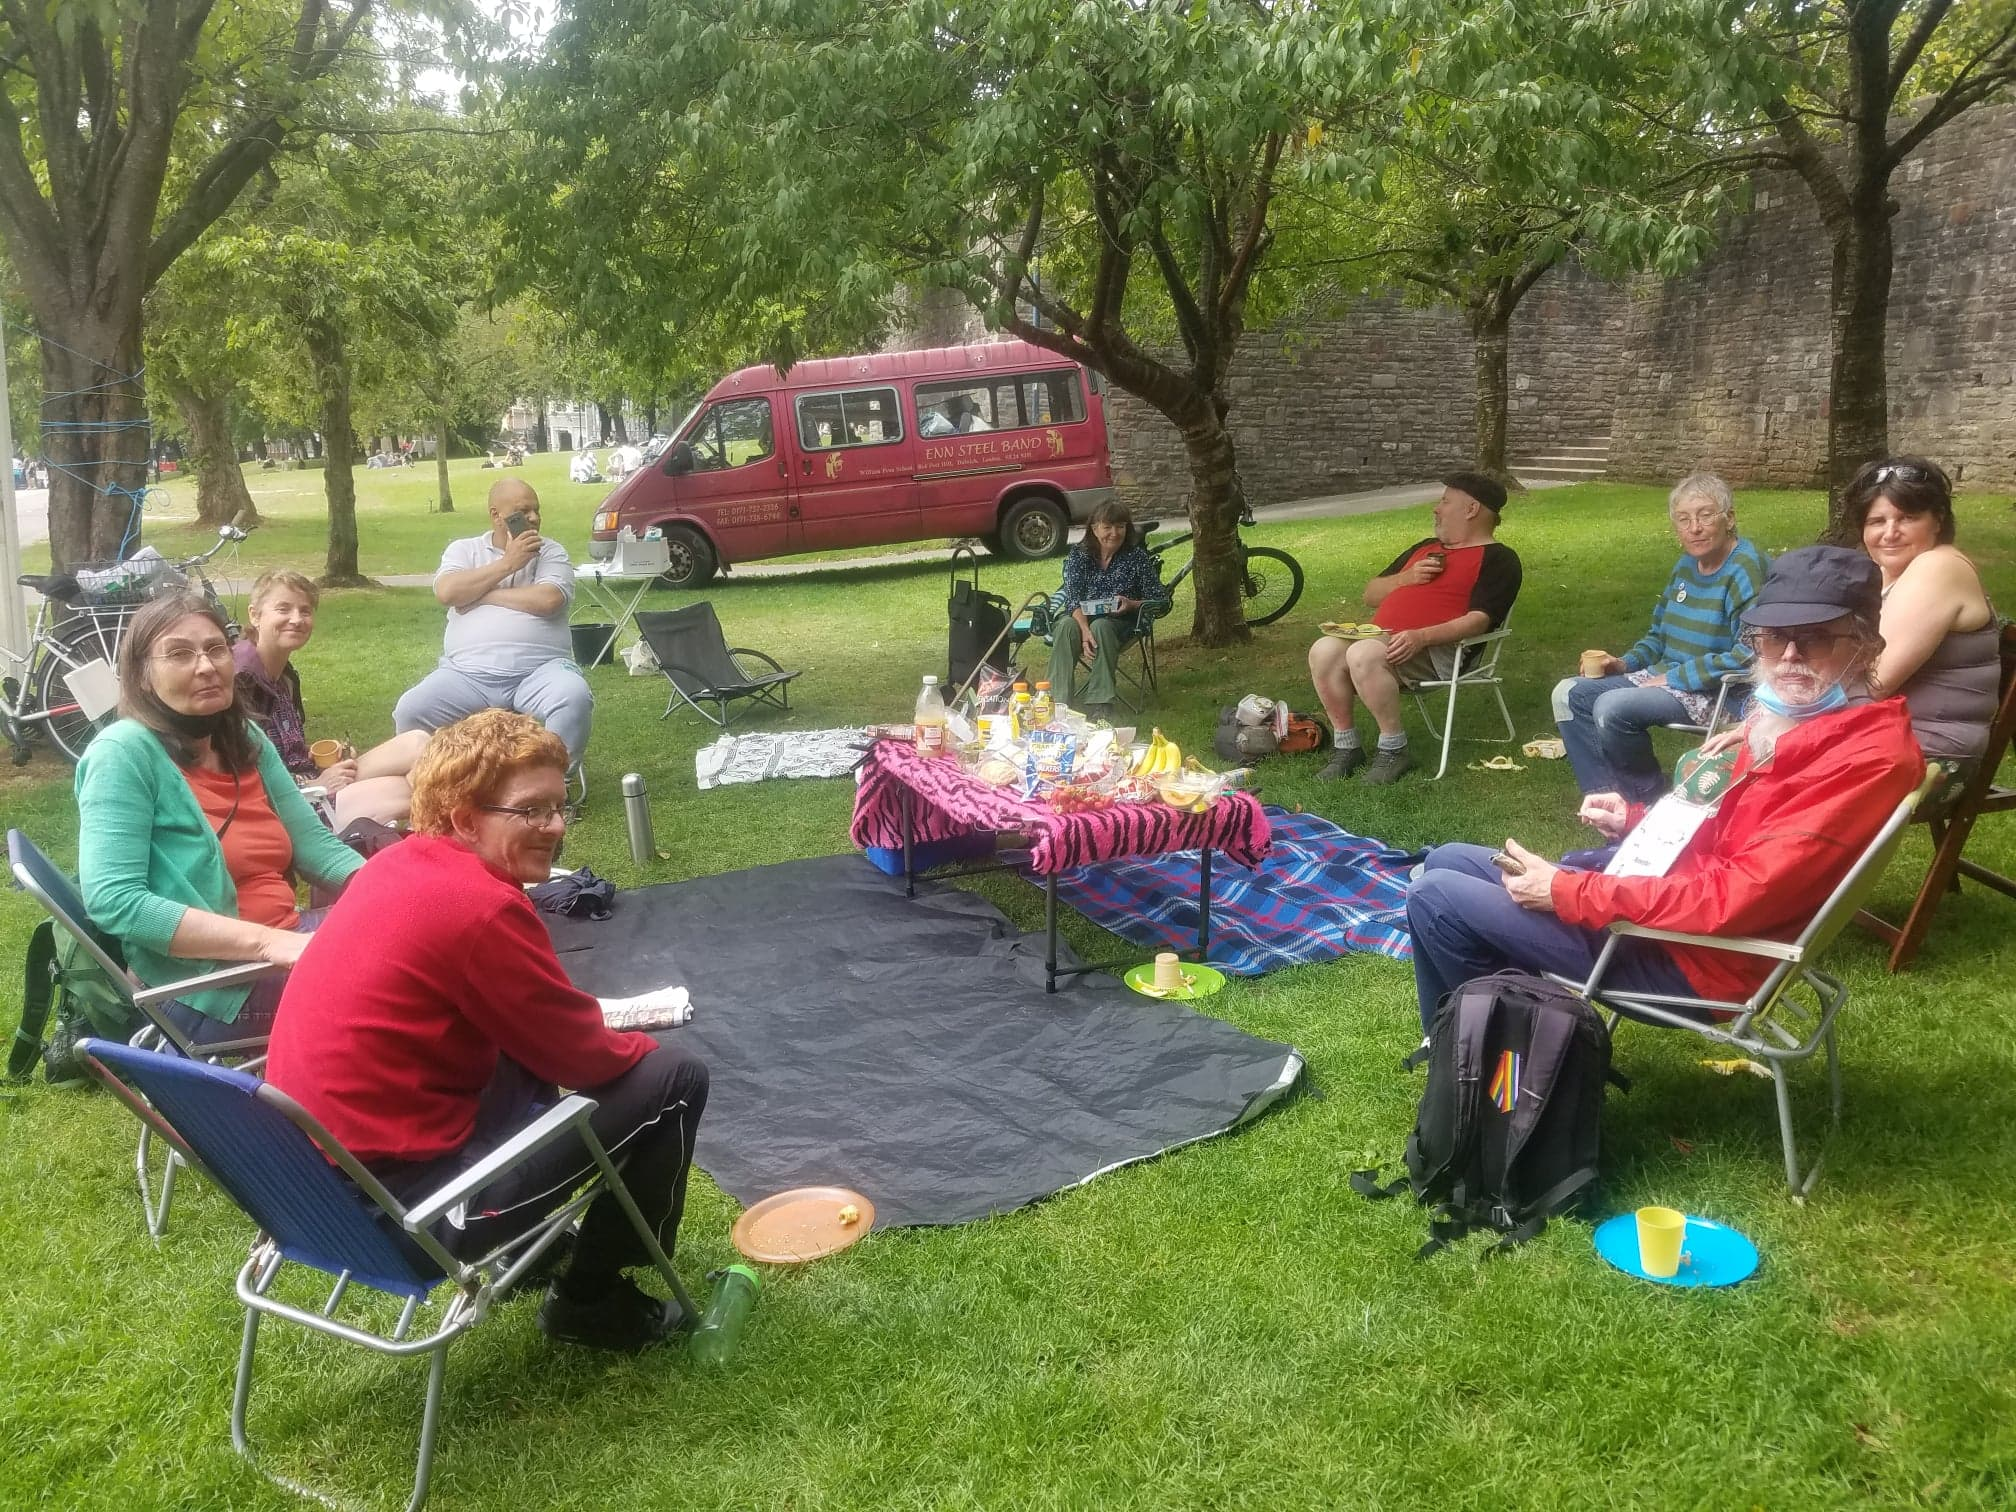 Nine people sit around a picnic blanket and table